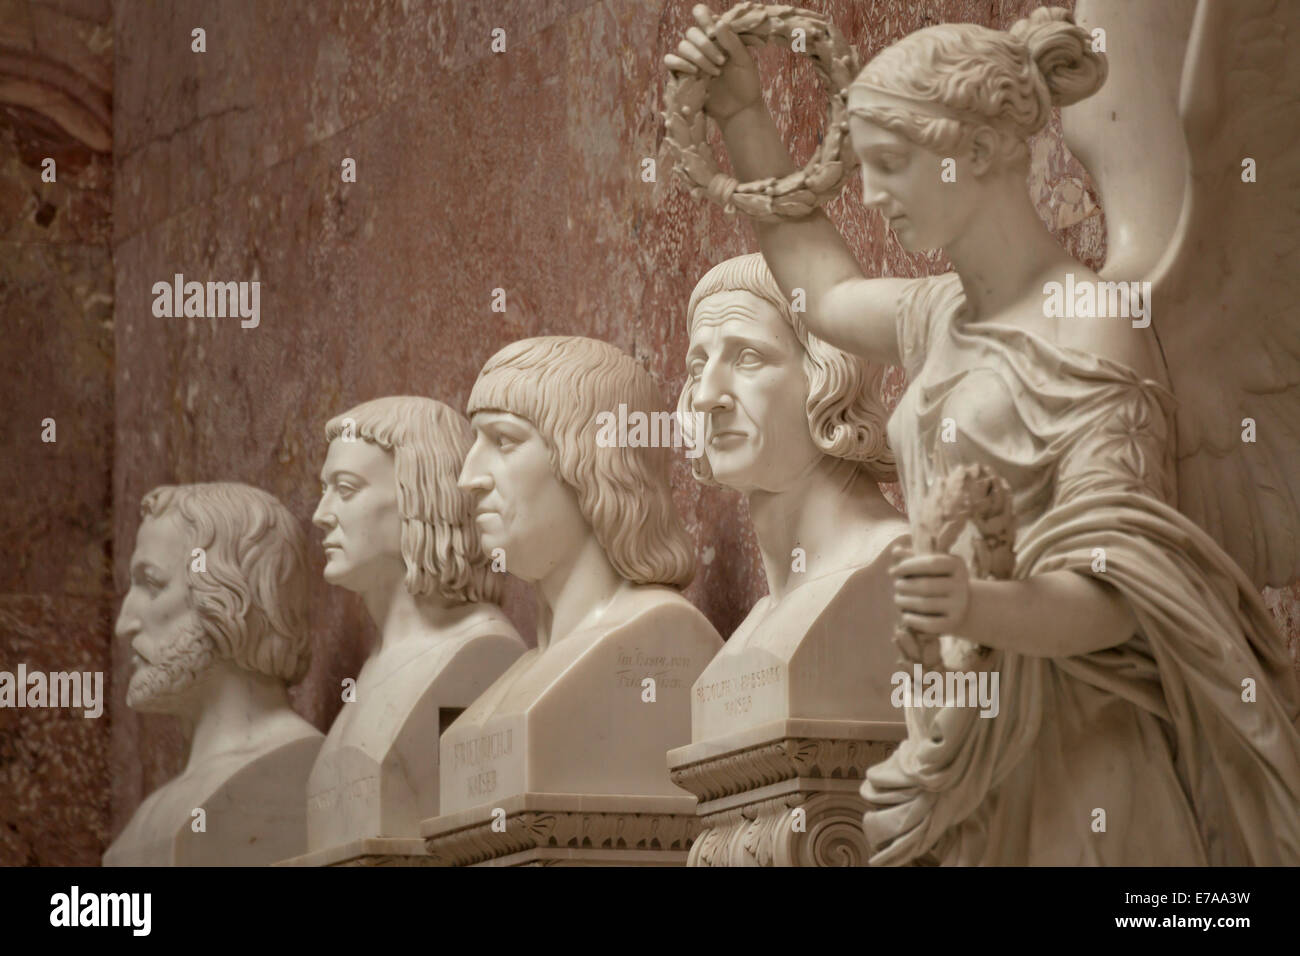 Marble busts inside the Walhalla memorial above the Danube River, east of Regensburg, Bavaria, Germany, Europe - Stock Image